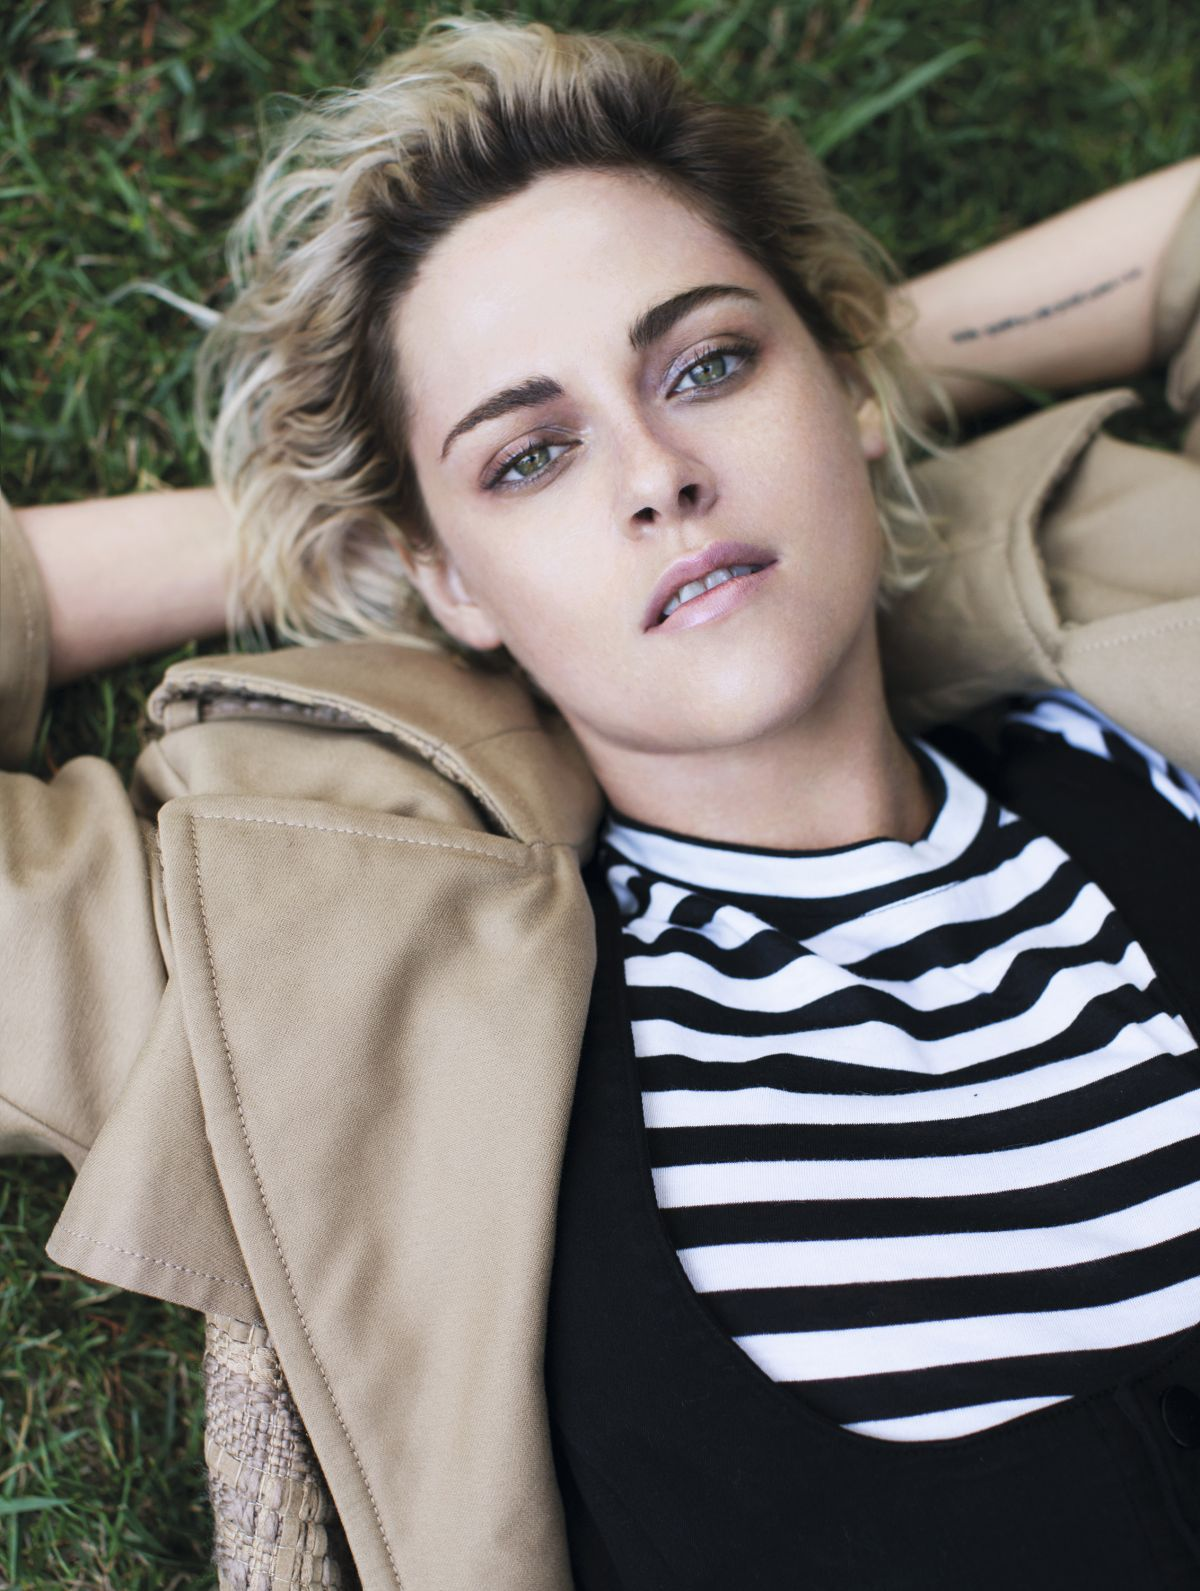 Kristen Stewart Photo Shoot for Elle Magazine UK September 2016